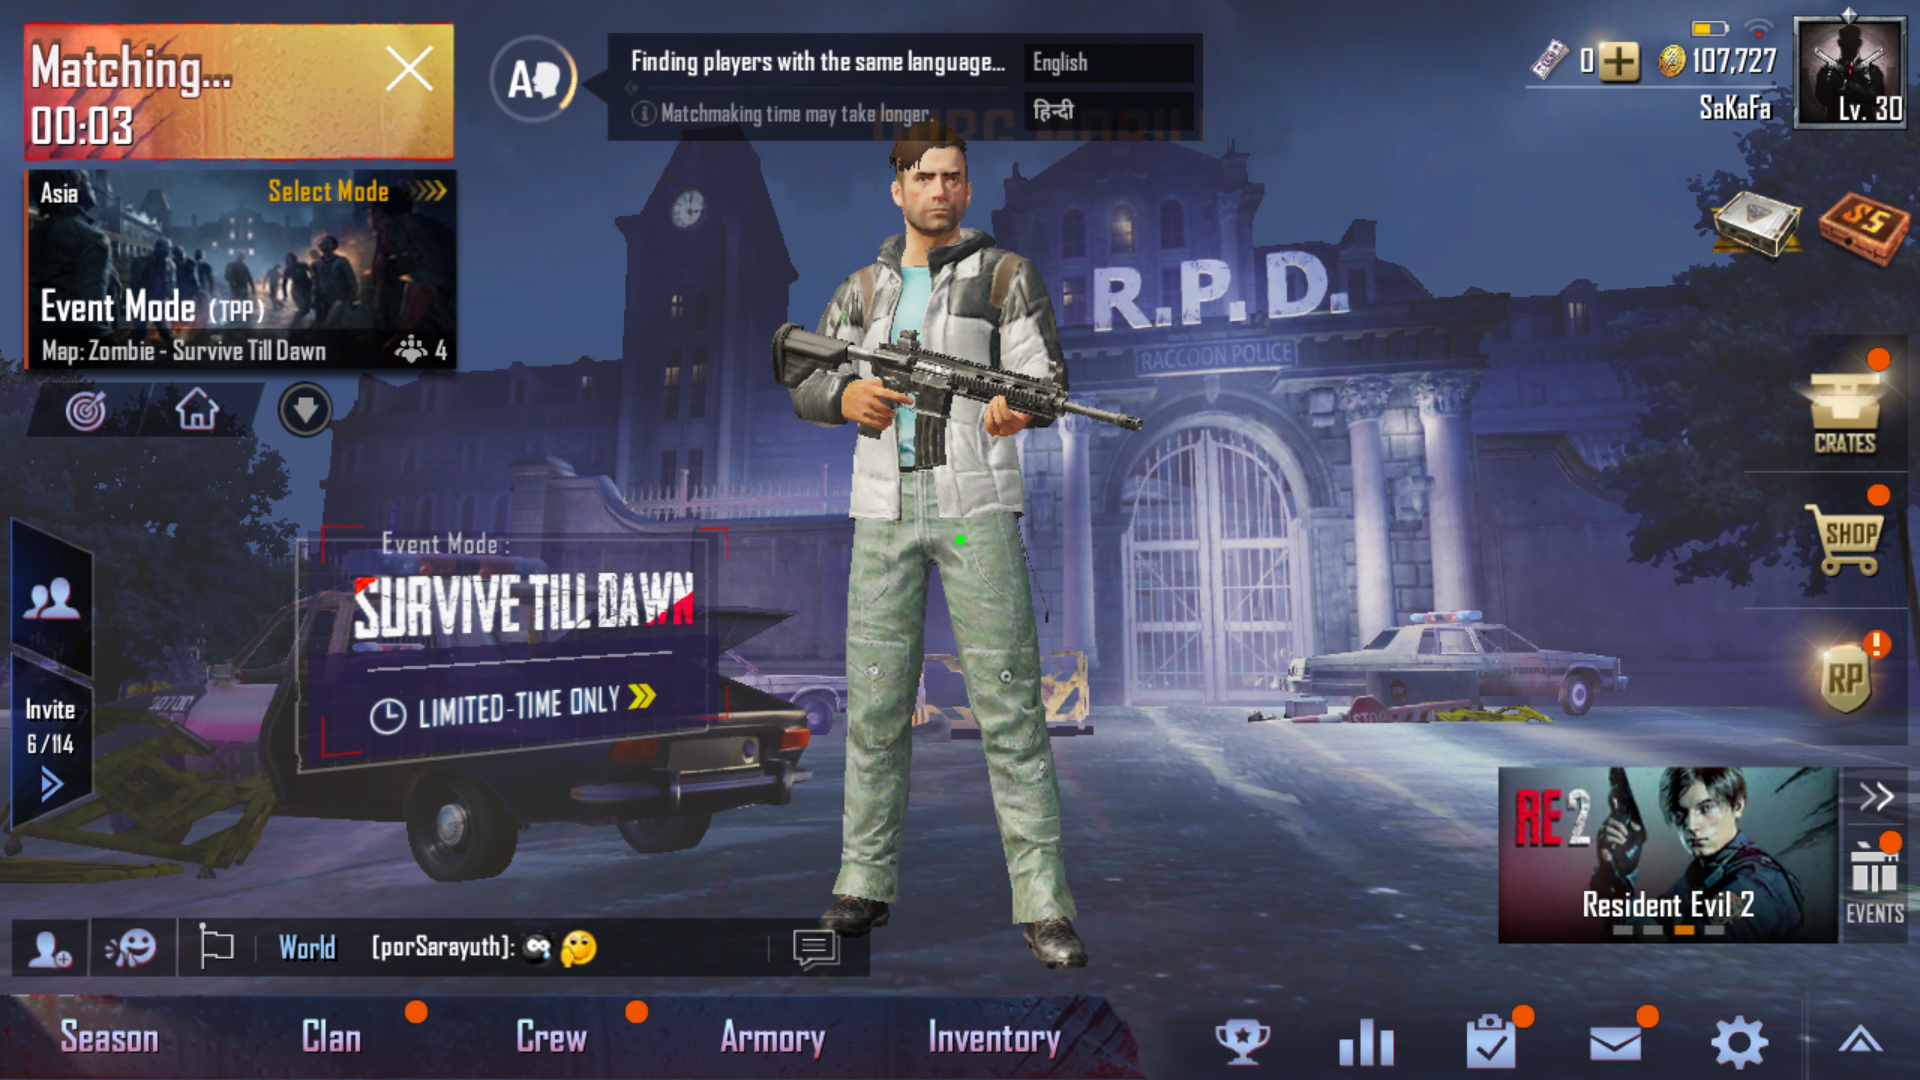 Pubg Mobile New Update Live Now With New Map And Other Stuff - pubg mobile new update games